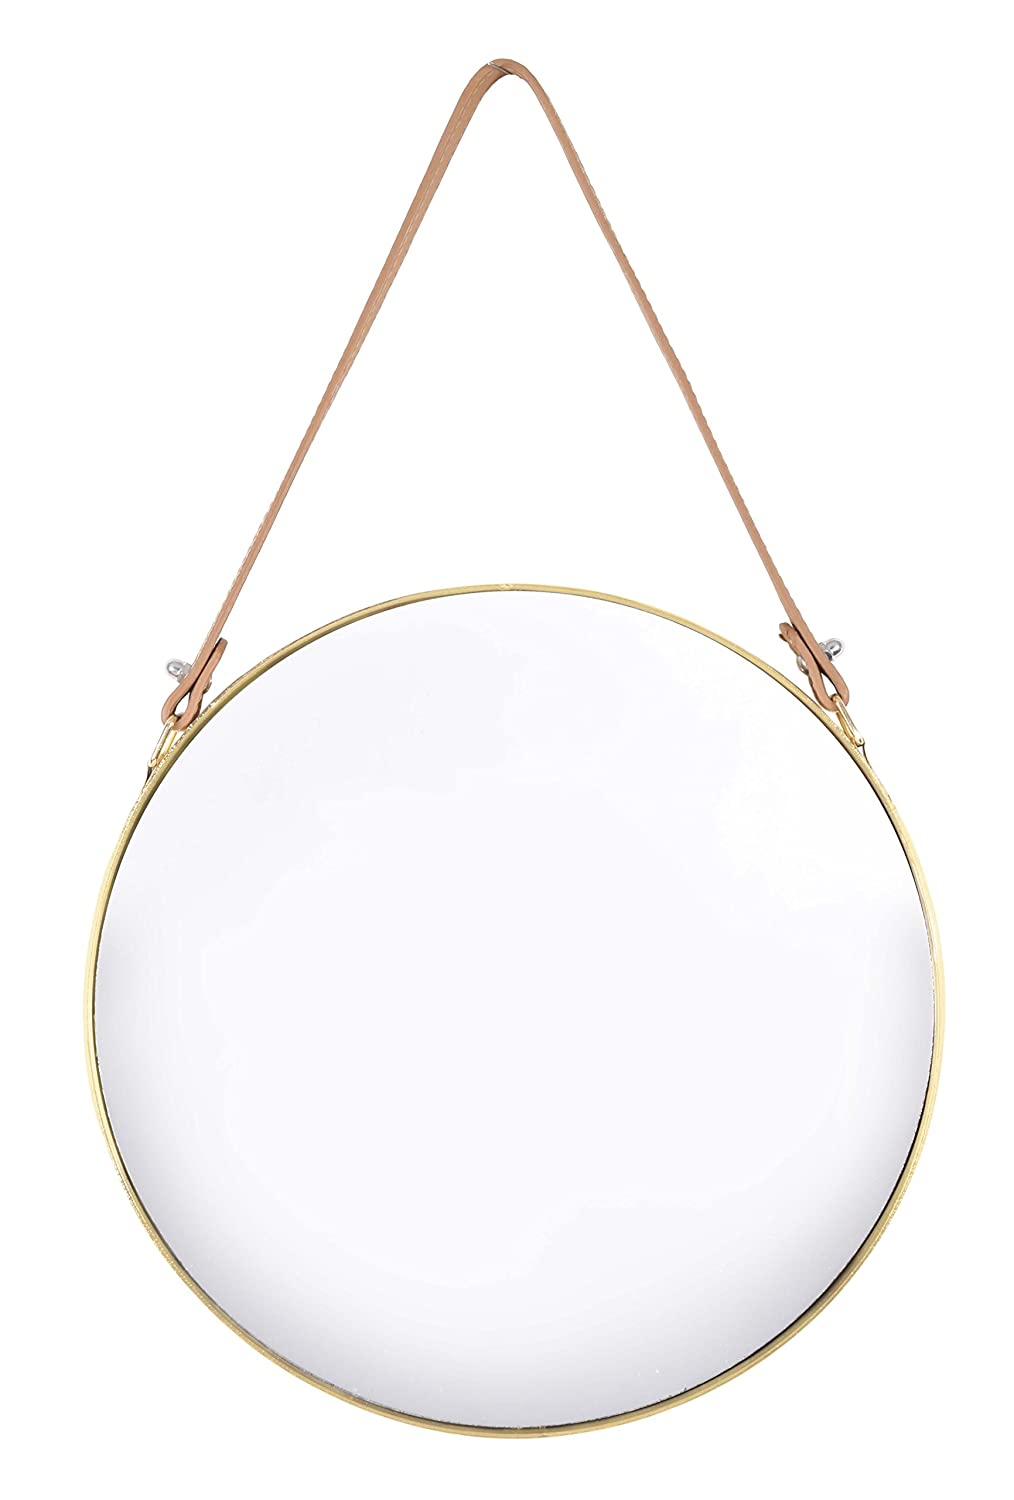 Home Selections Metal Framed Round Hanging Mirror - Gold - 30 x 30cm Innova Editions